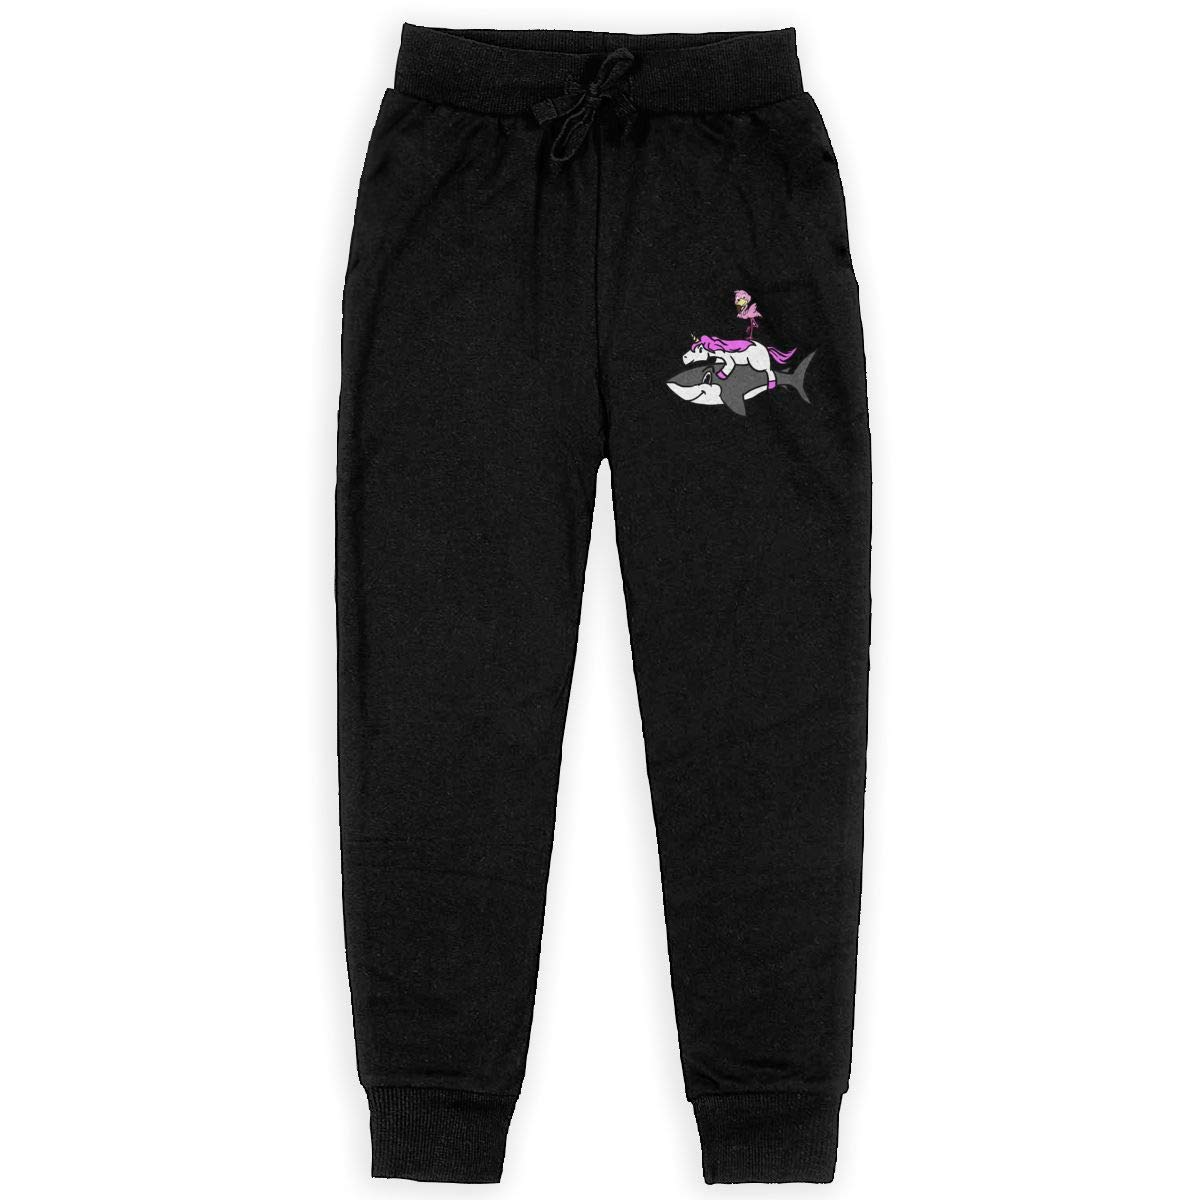 Bitches with Hitches LETE Unisex Youth Active Basic Jogger Fleece Pants Training Pants with Pockets